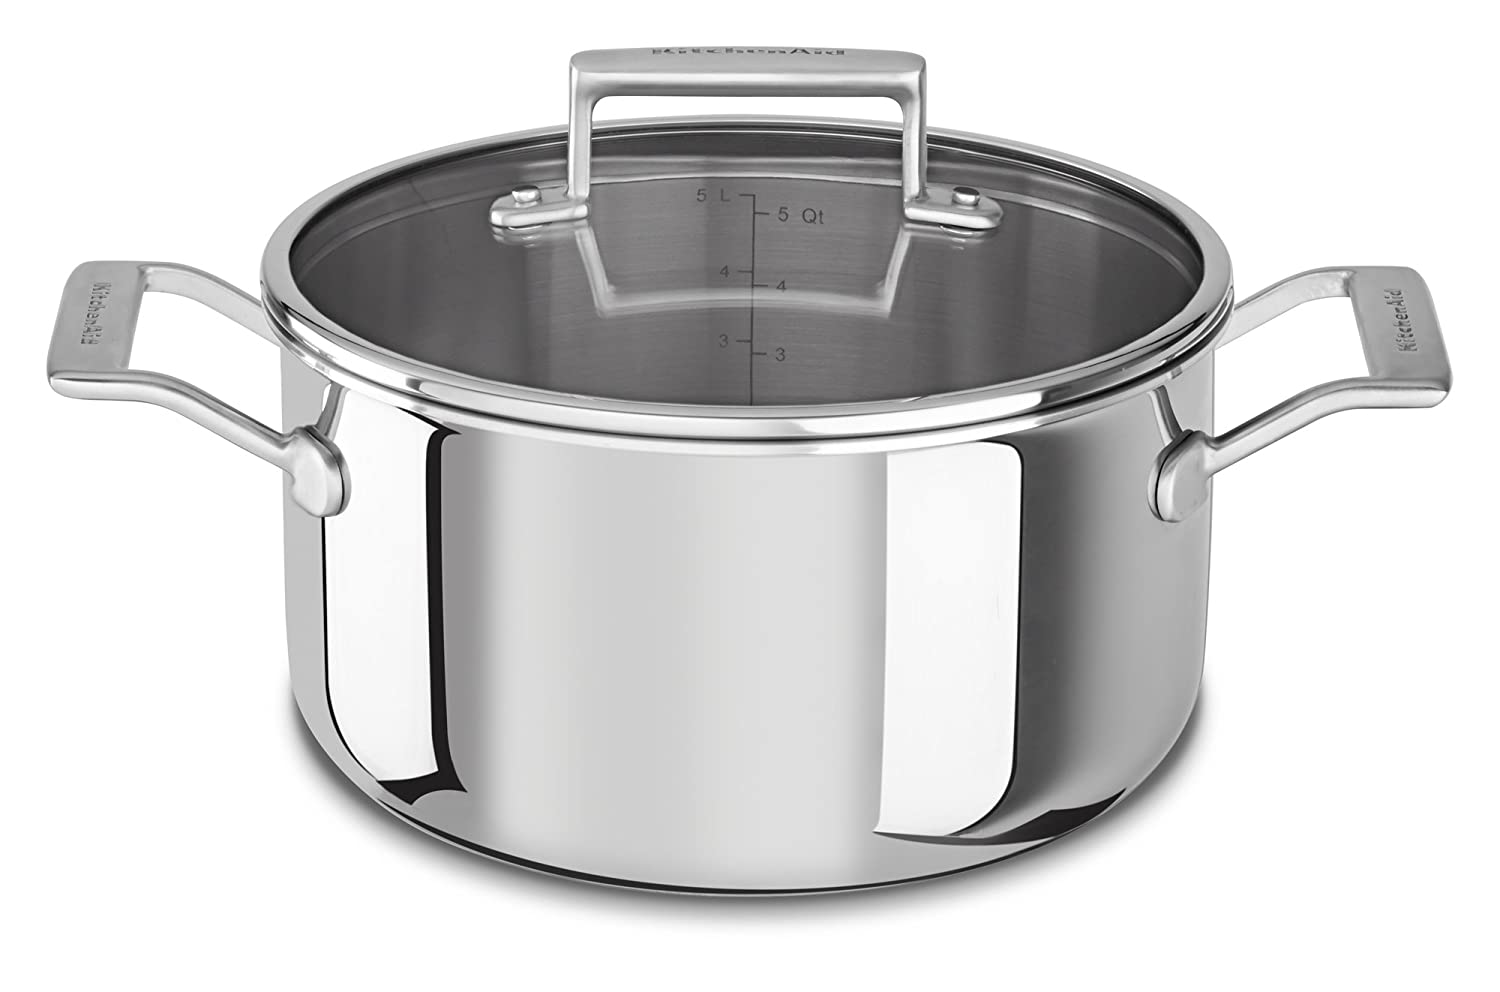 KitchenAid KC2T60LCST Tri-Ply 6 quart Low Casserole with Lid, Stainless Steel, Medium